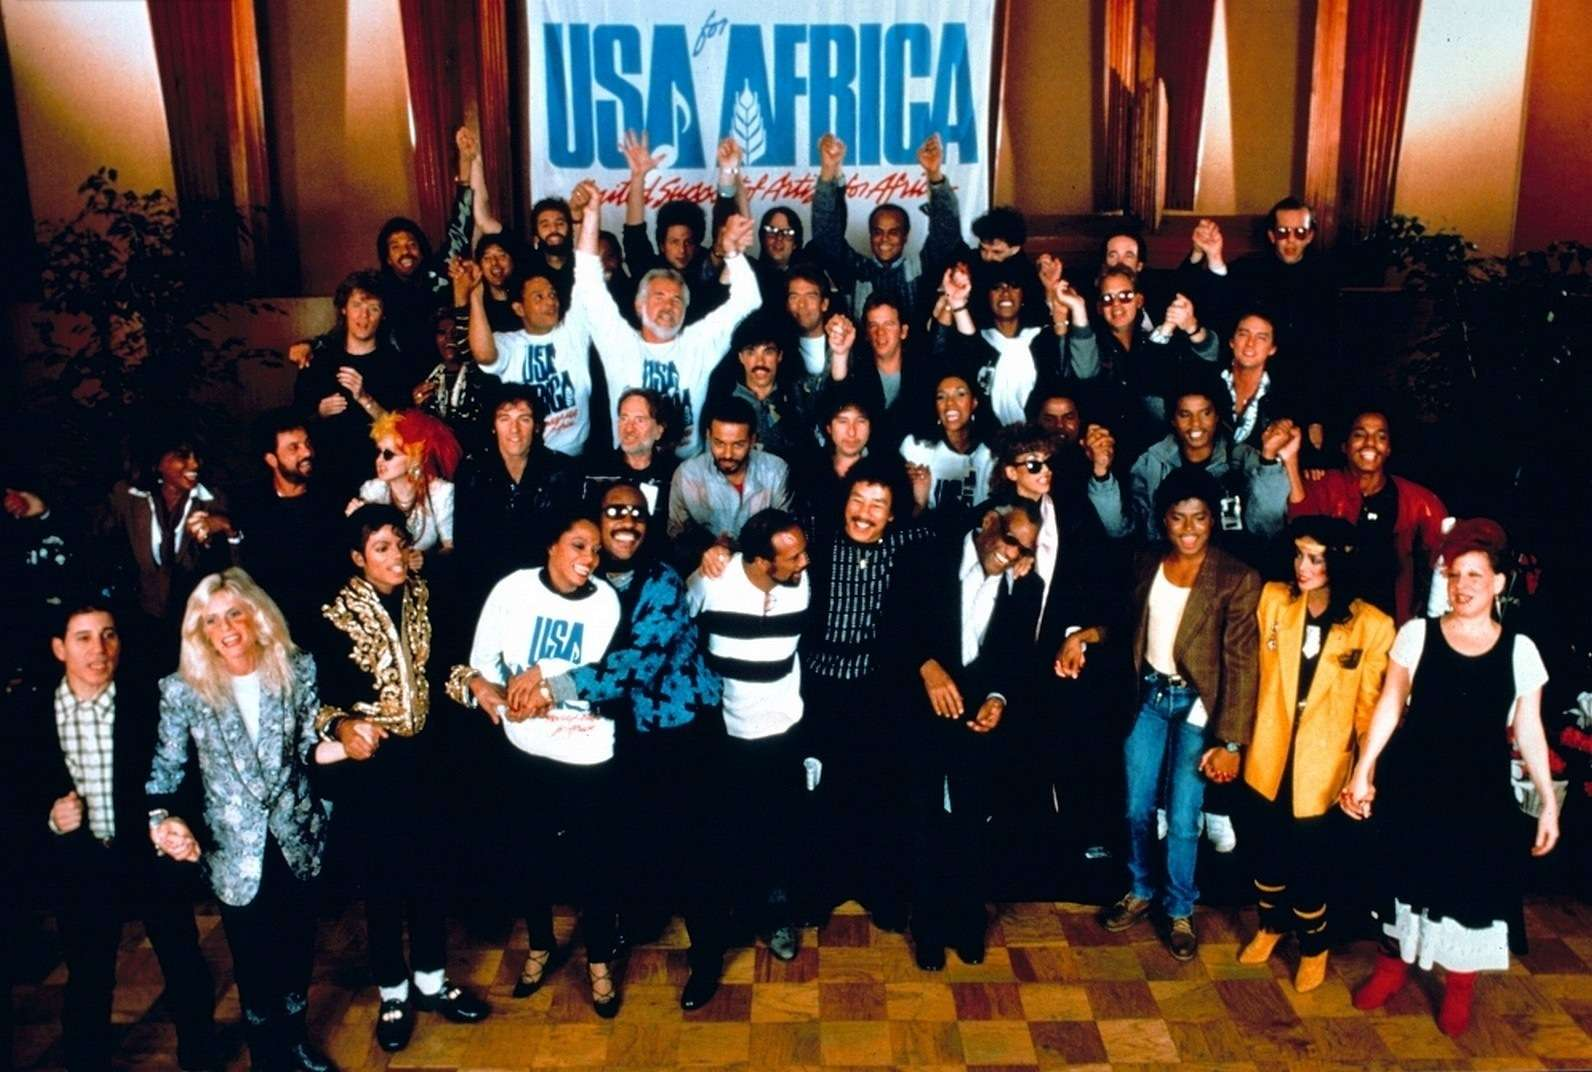 'We Are the World' cumple 30 años Foto: mjworld.net